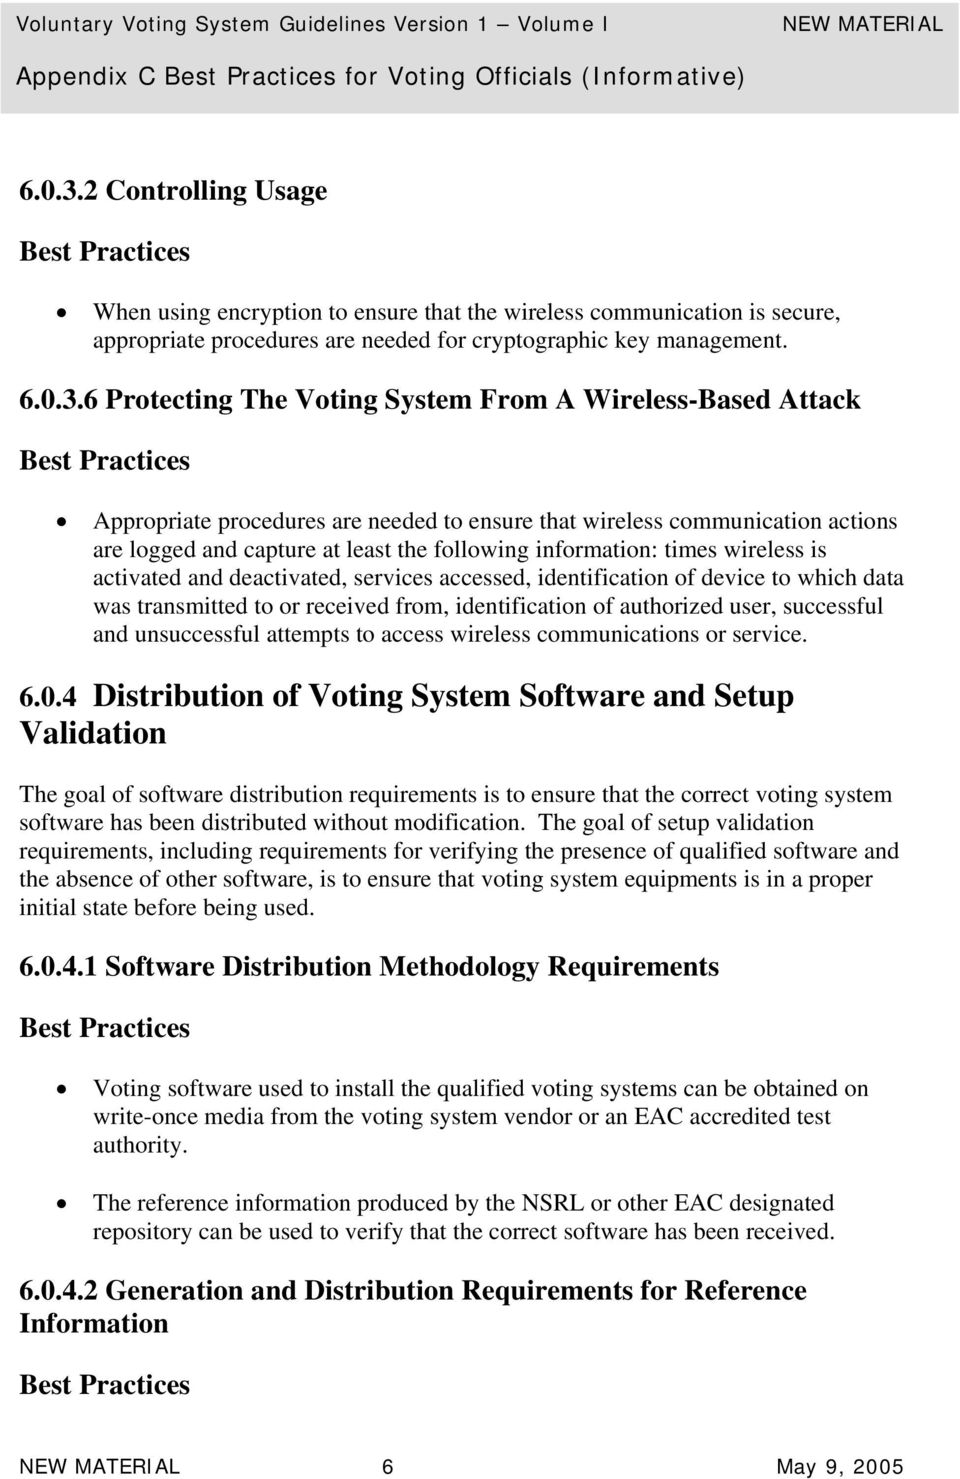 6 Protecting The Voting System From A Wireless-Based Attack Appropriate procedures are needed to ensure that wireless communication actions are logged and capture at least the following information: